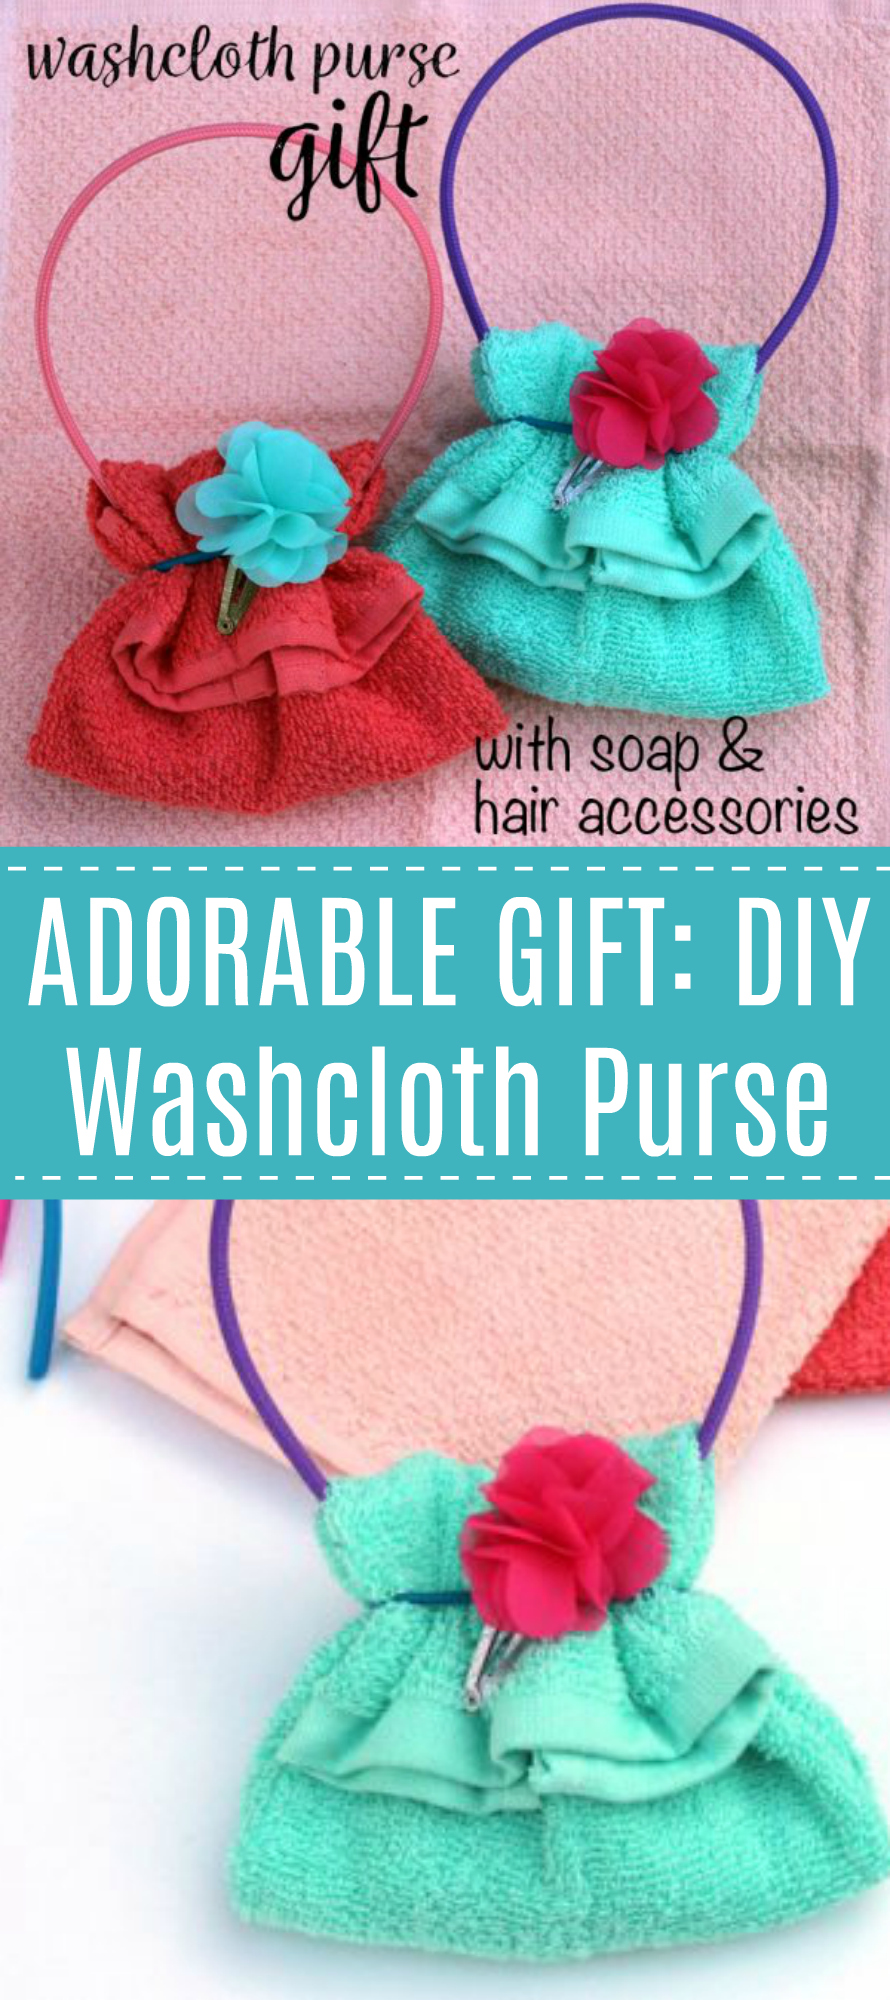 DIY Washcloth Purse Gift